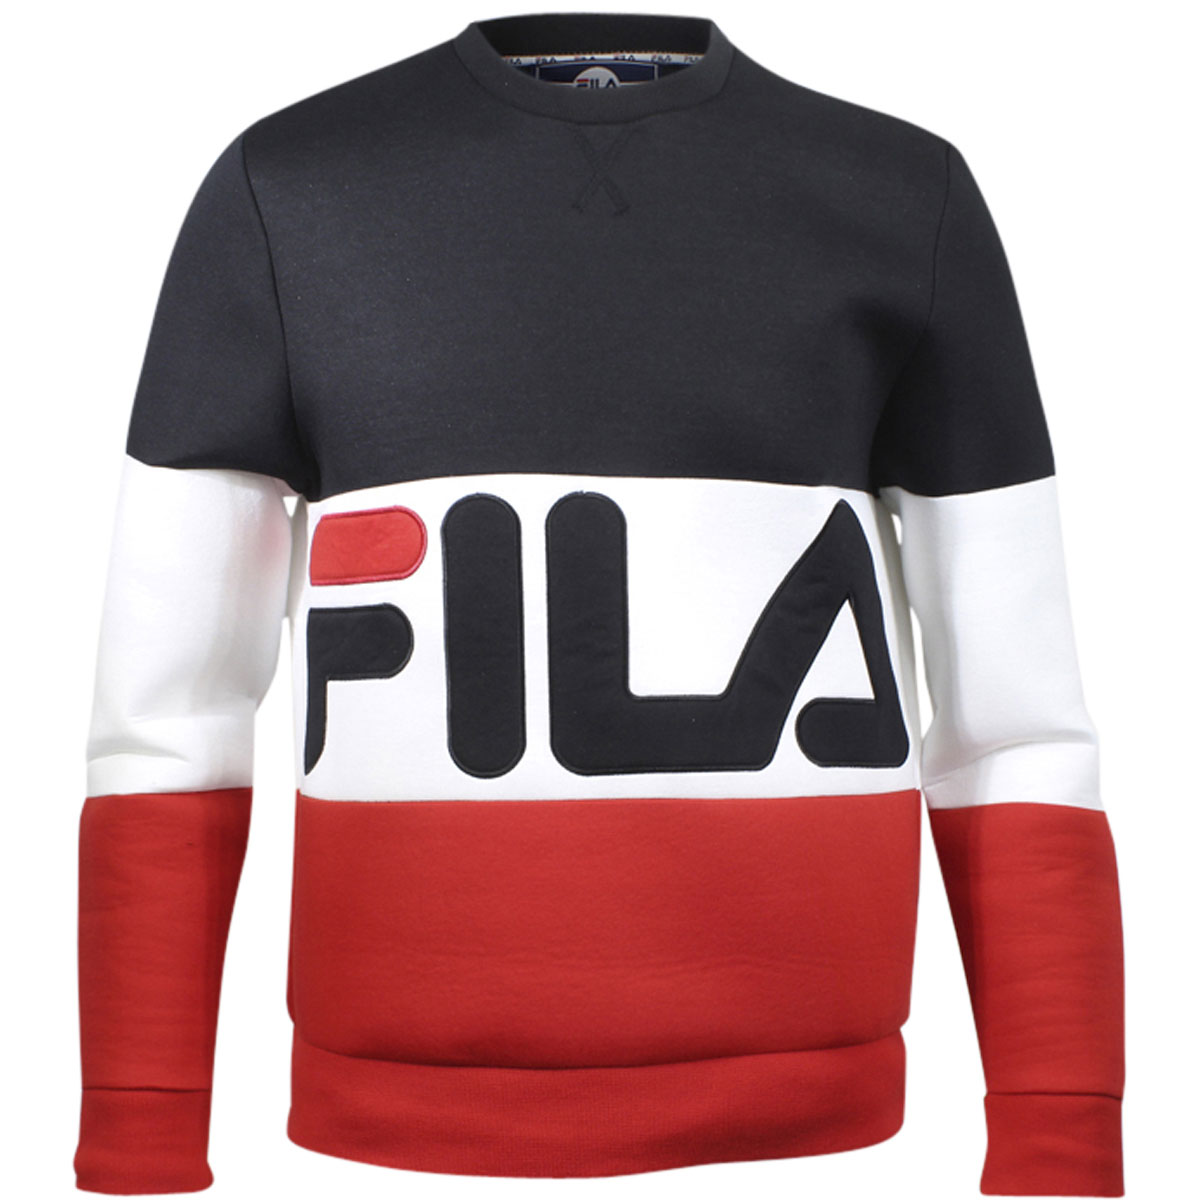 fila sweatshirt mens